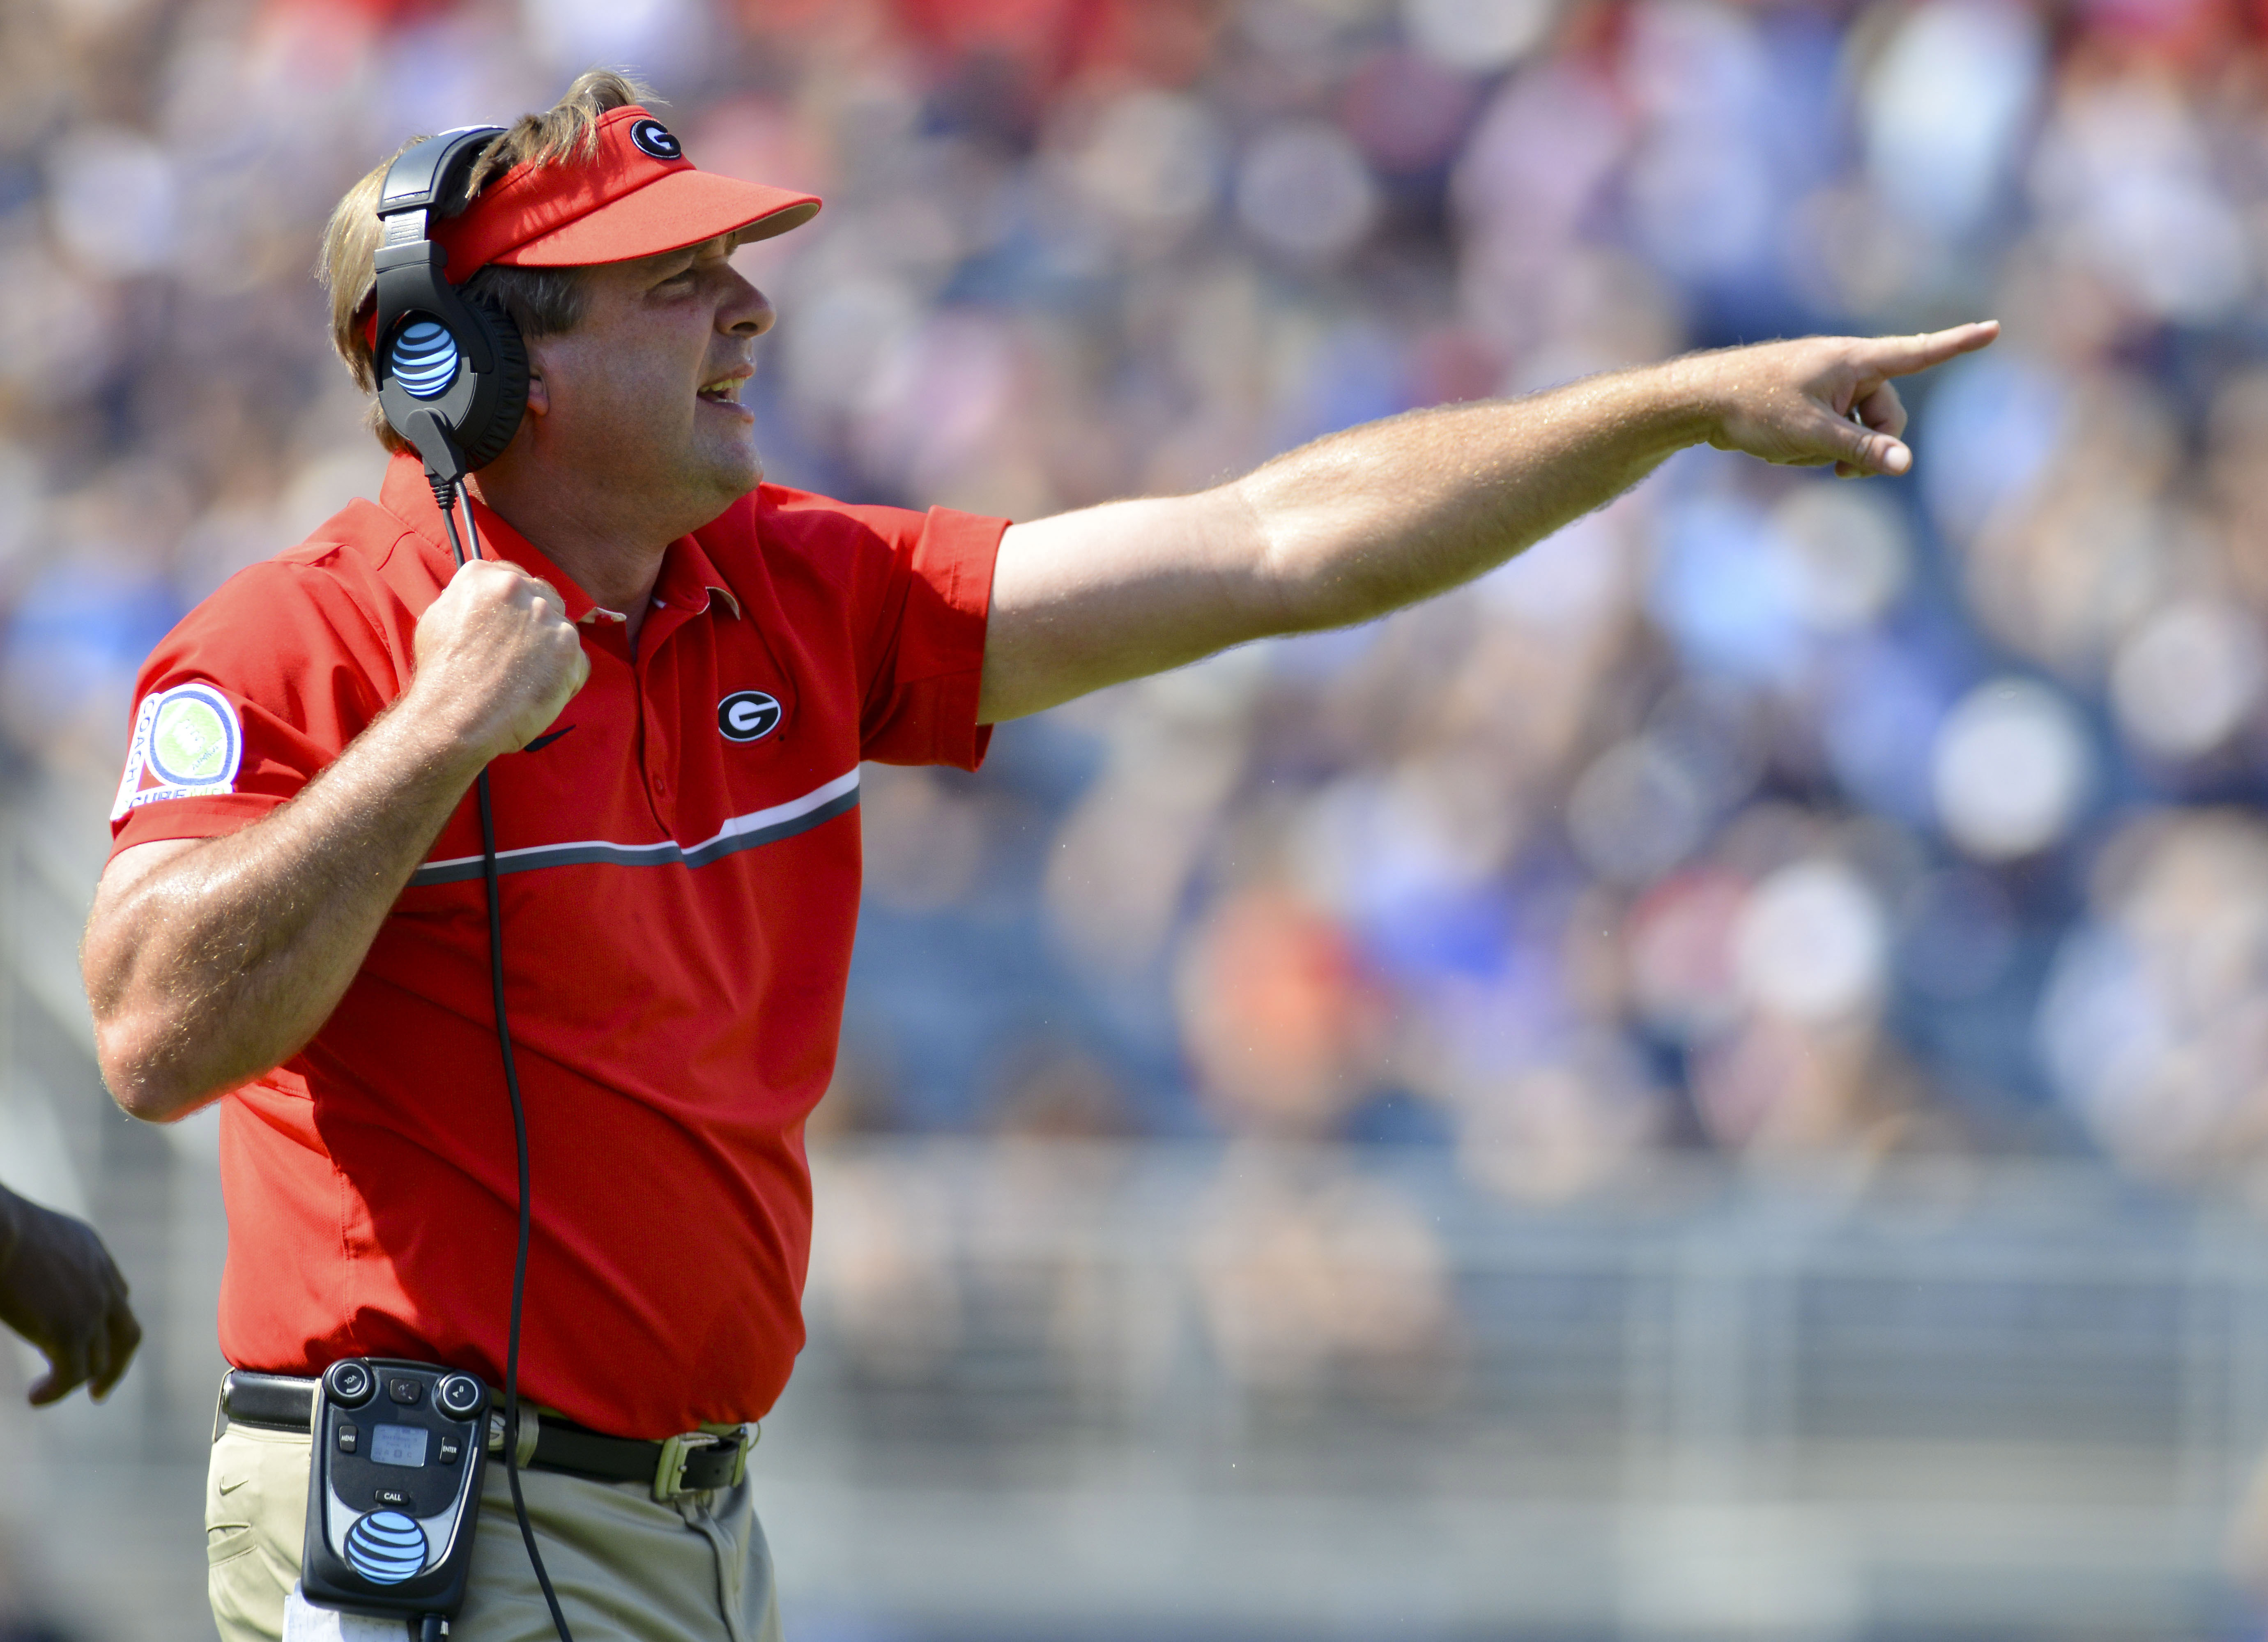 Sep 24, 2016; Oxford, MS, USA: Georgia Bulldogs head coach Kirby Smart yells during the first quarter of the game against the Mississippi Rebels at Vaught-Hemingway Stadium. Mississippi won 45-14. Mandatory Credit: Matt Bush-USA TODAY Sports.